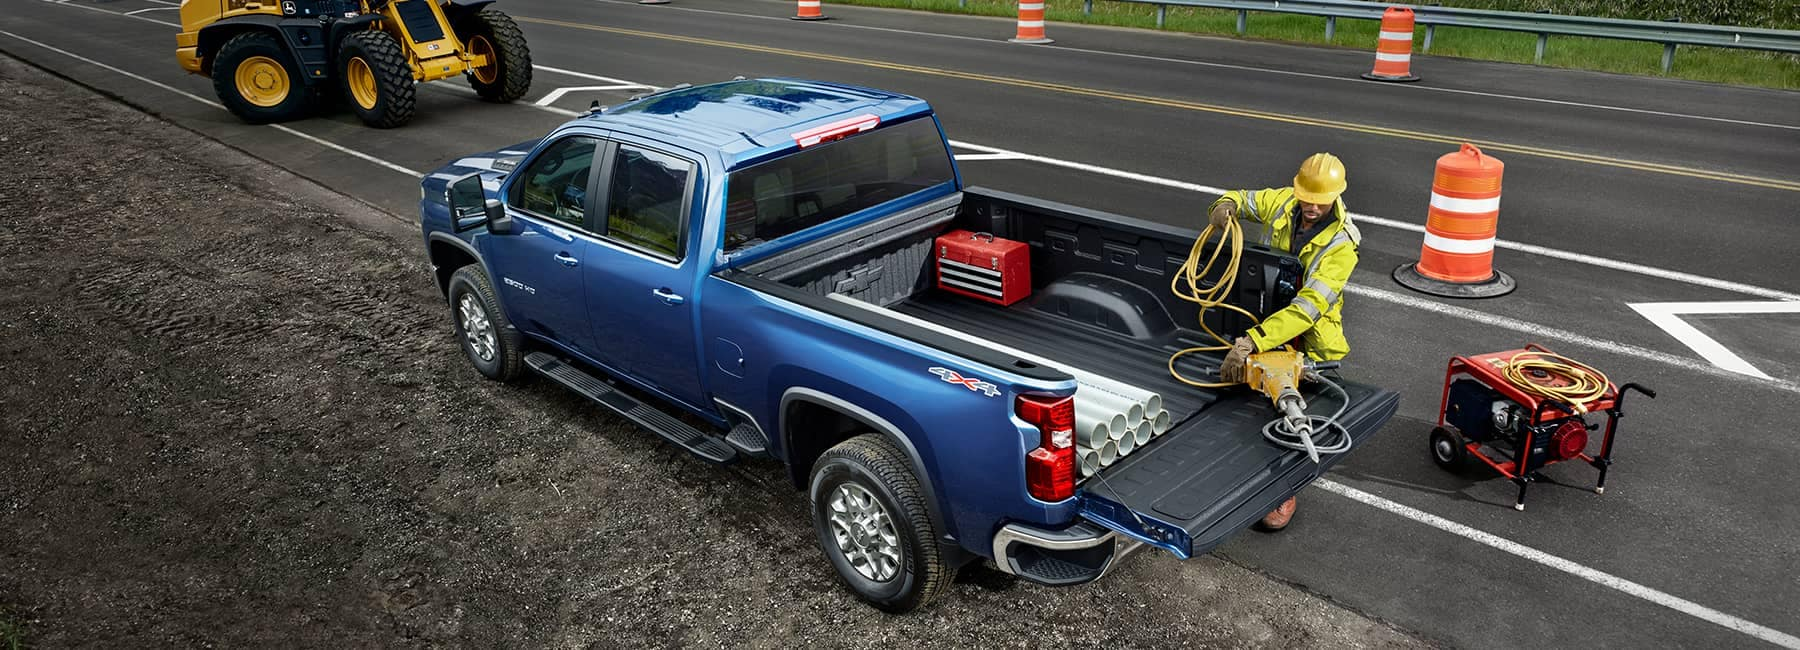 Blue 2021 Chevrolet Silverado 2500HD Crew Cab on a Roadside Work Site